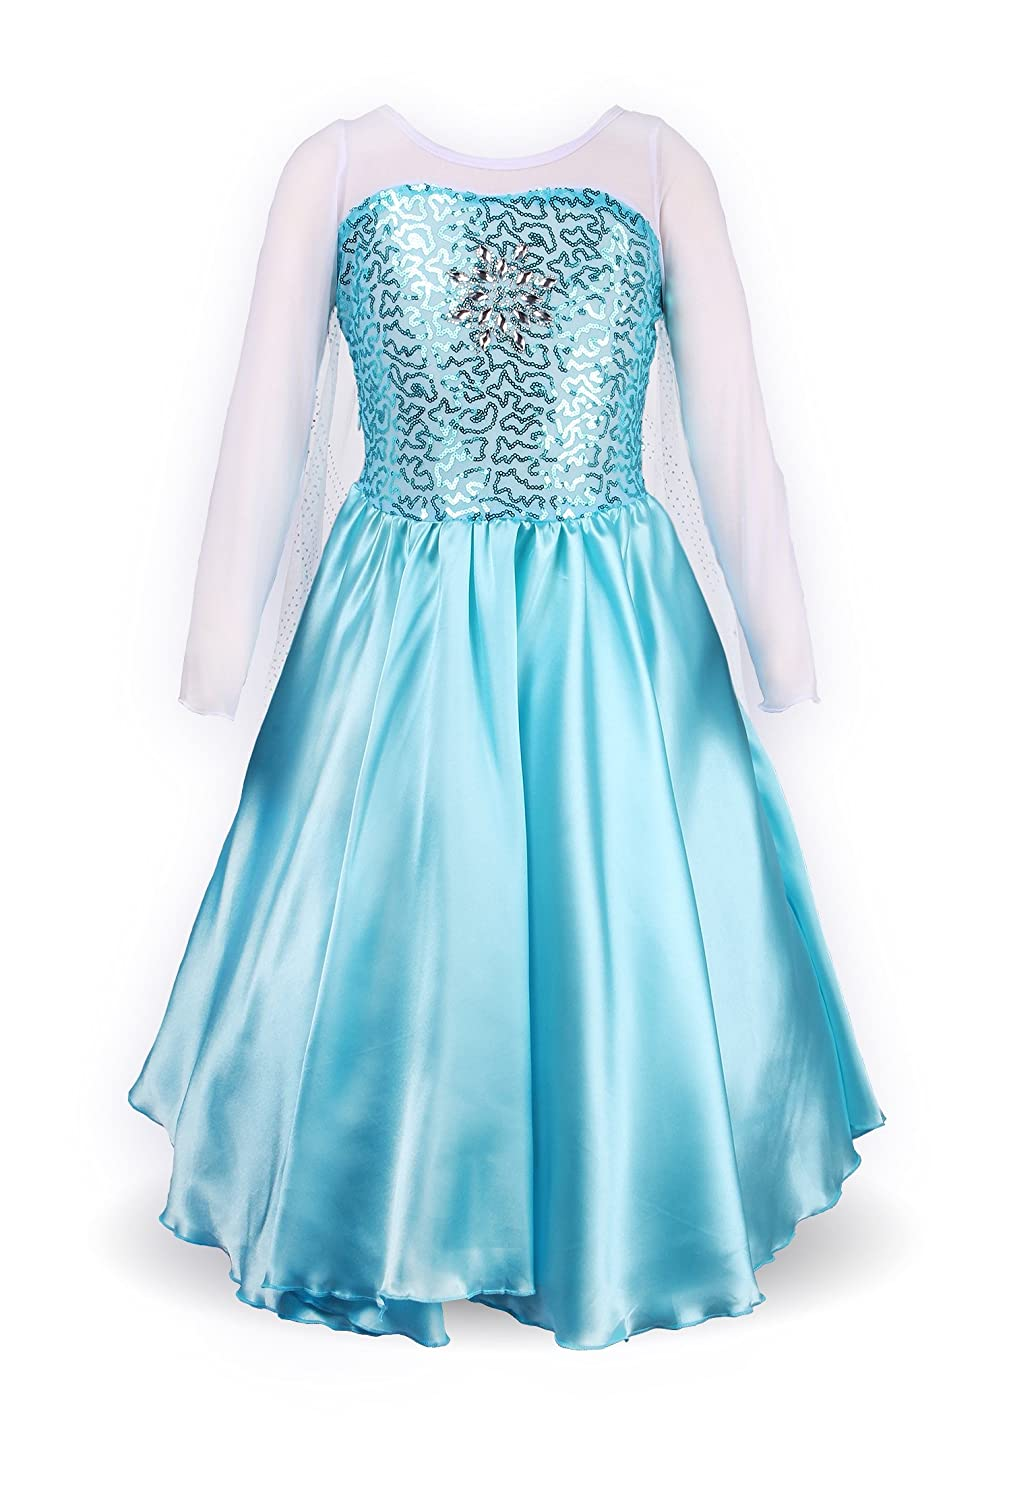 Frozen Dress For Girls | www.pixshark.com - Images ...